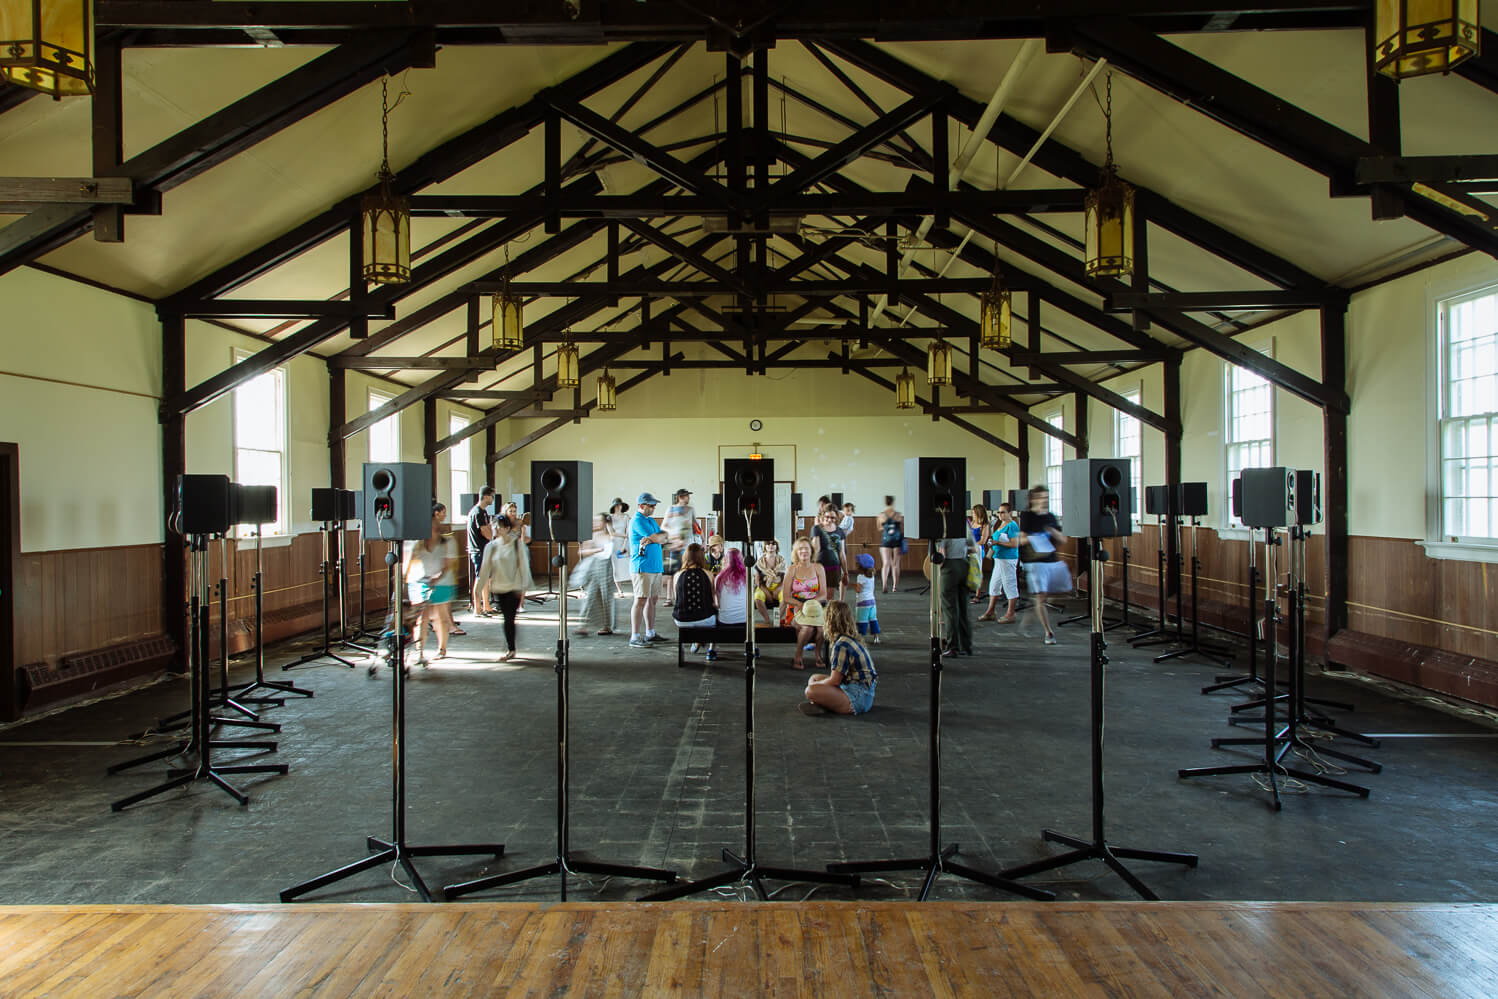 Installation view of Janet Cardiff's <em>The Forty Part Motet</em> as part of <em>Rockaway!</em> on view at Gateway National Recreation Area at Fort Tilden from June 29 to September 1, 2014. Courtesy of MoMA PS1 © 2014. Photo: Pablo Enriquez.